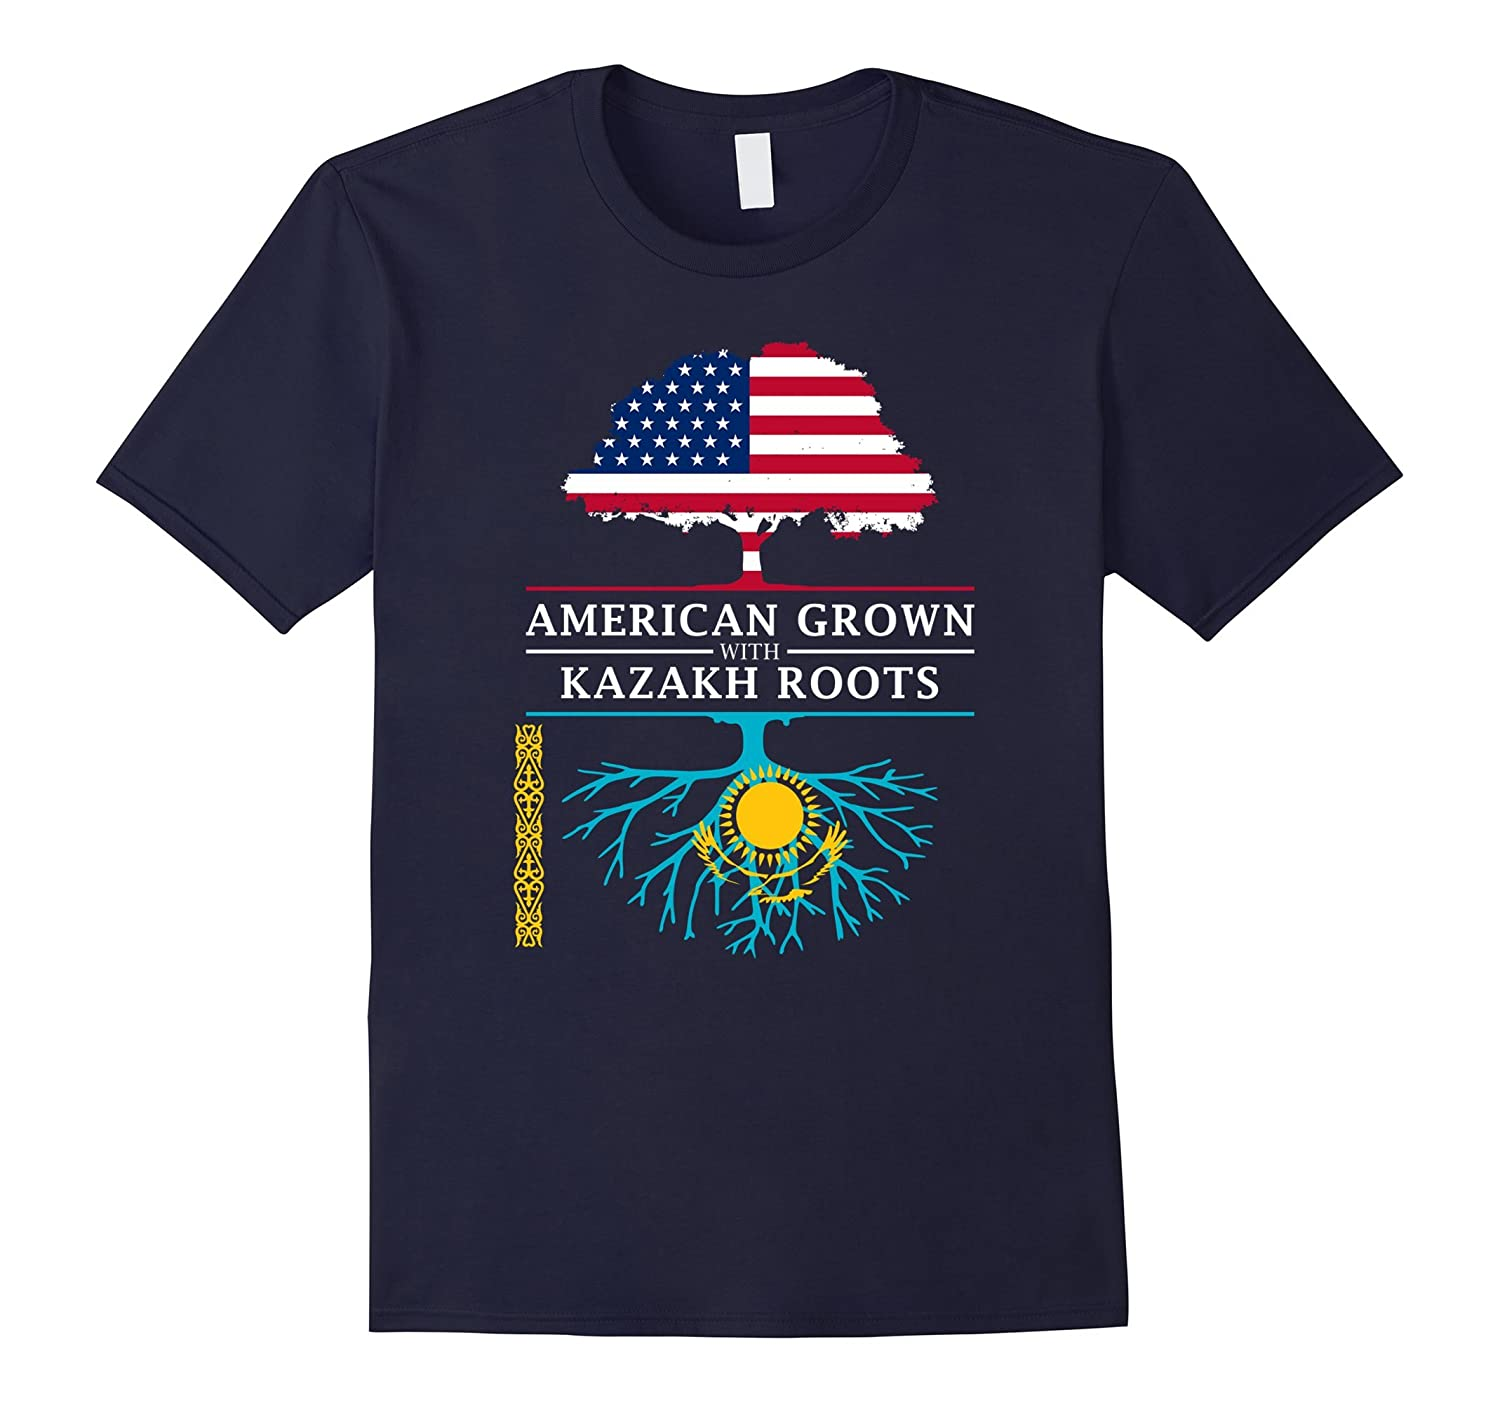 American Grown with Kazakh Roots T-Shirt - Kazakhstan Shirt-PL